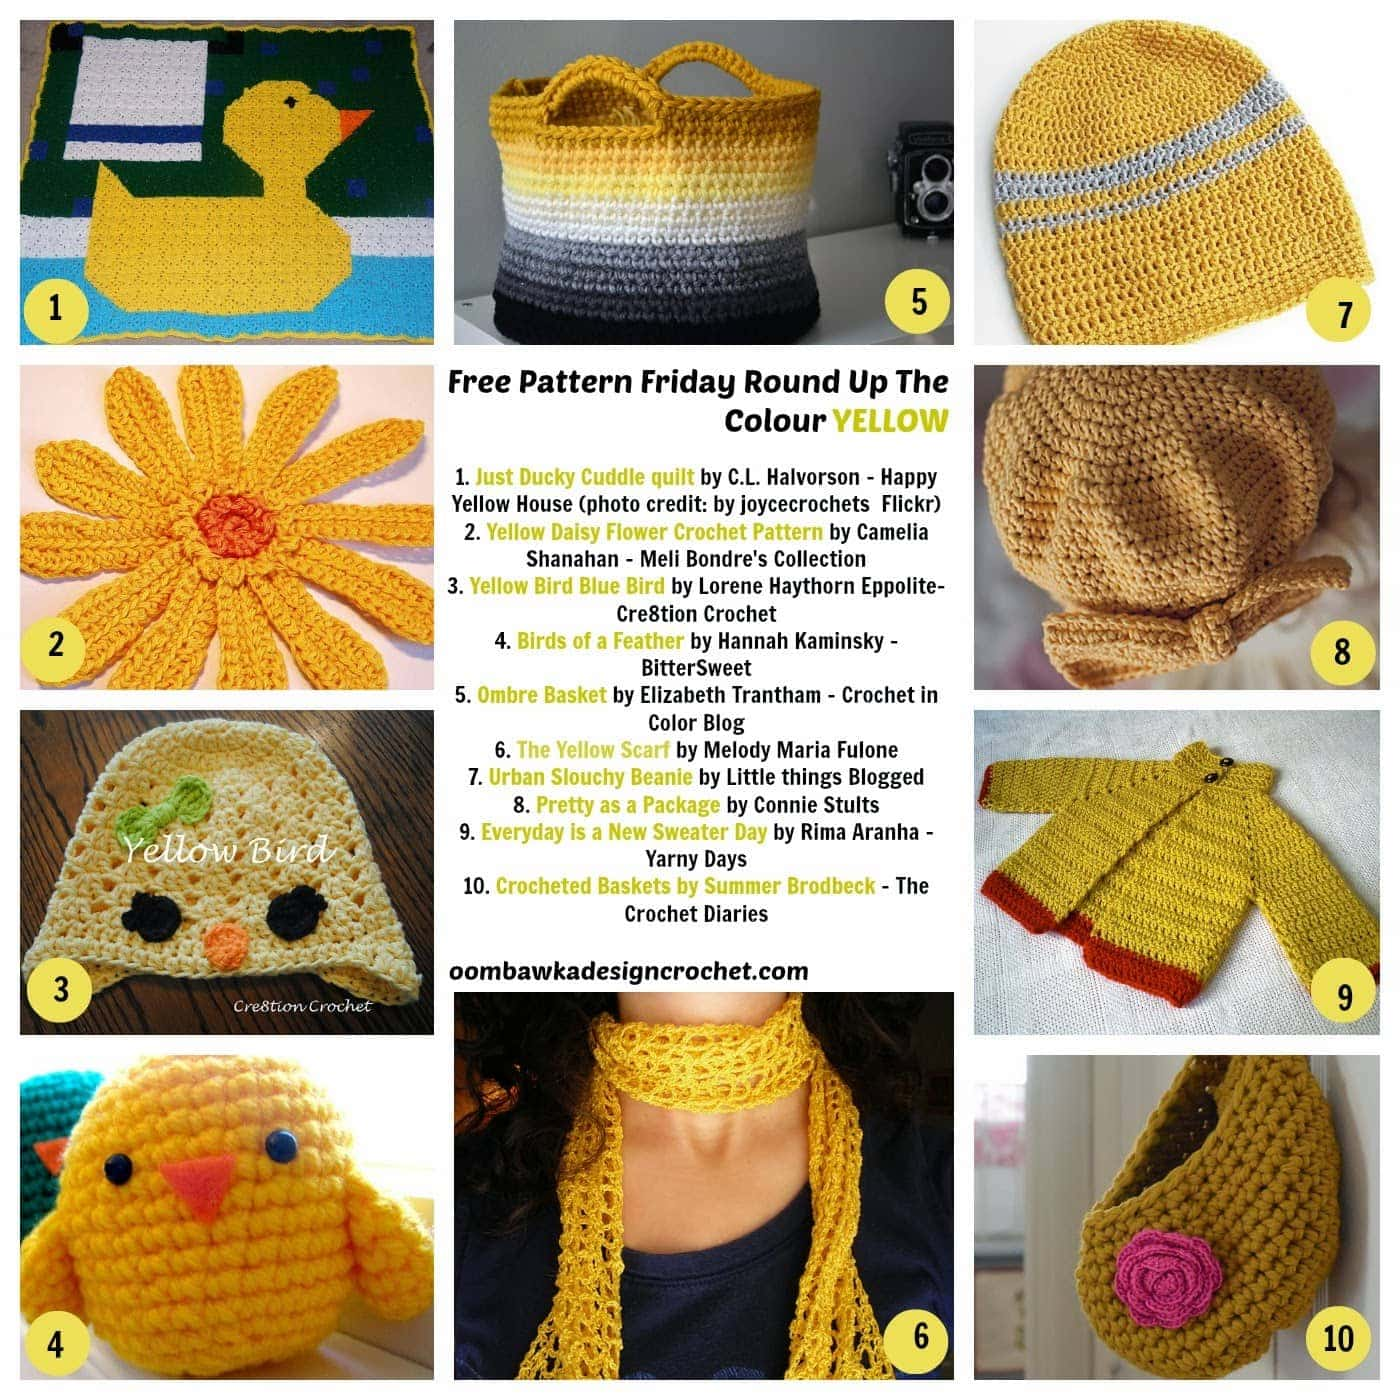 ... Crochet Pattern Friday - The Colour Yellow ? Oombawka Design Crochet